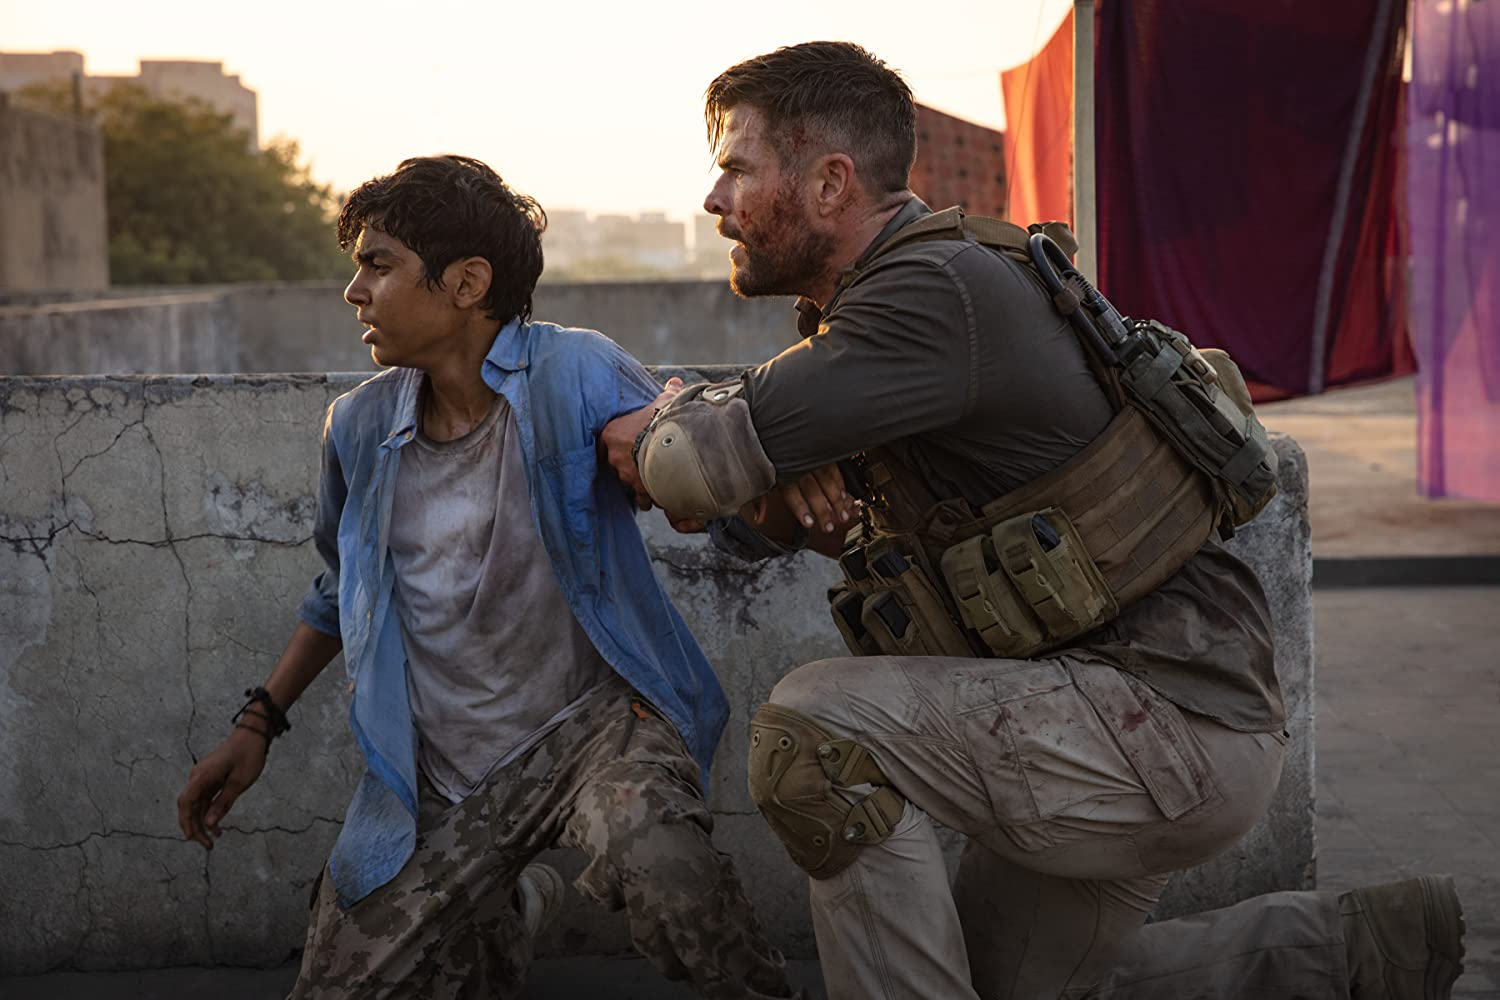 Chris Hemsworth and Rudhraksh Jaiswal in Extraction (2020)